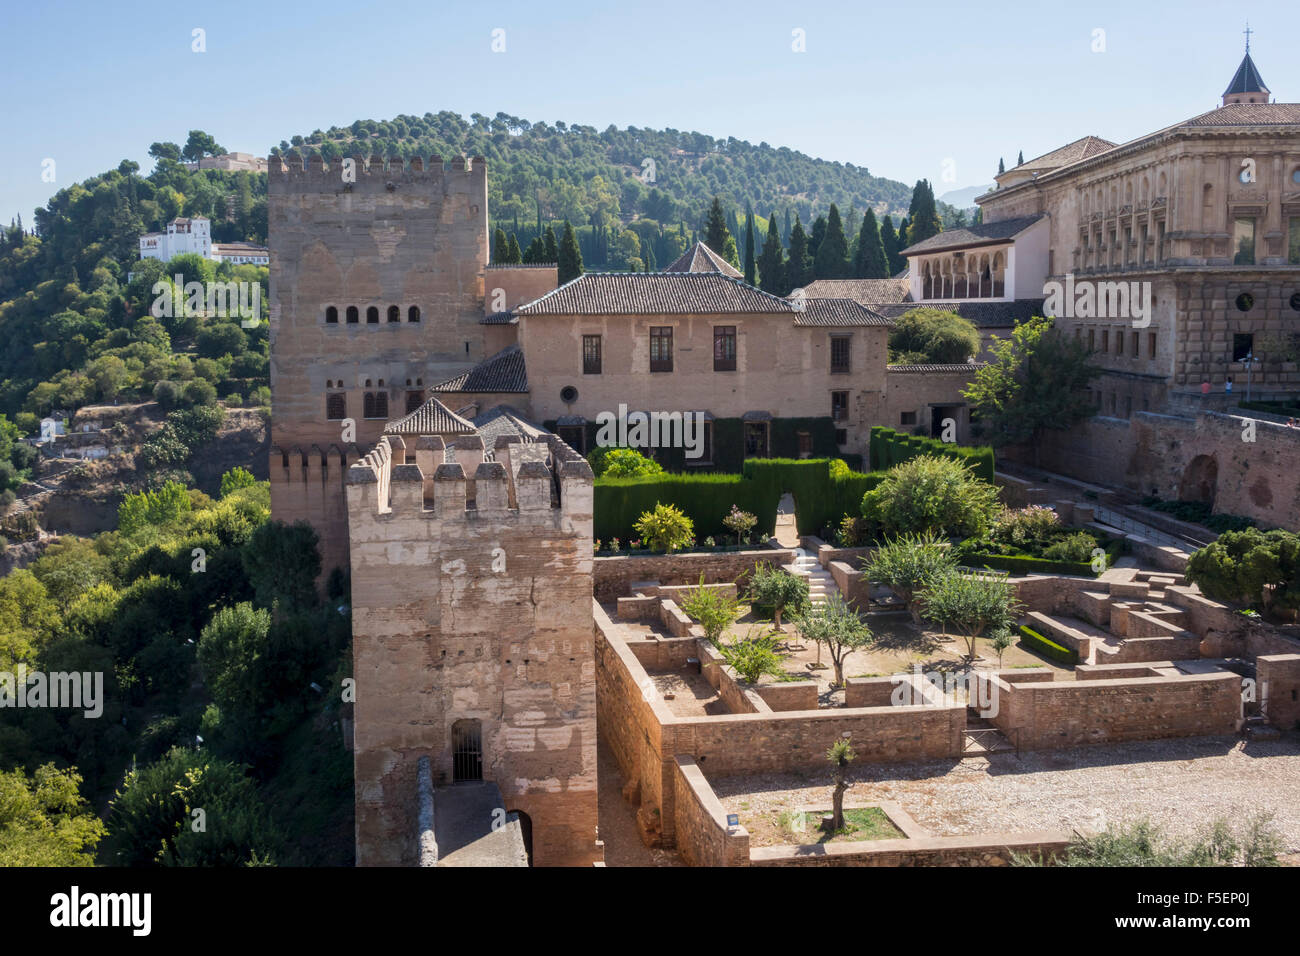 Alhambra palace - Granada, Andalucia, Spain, Europe - Gardens and Palacios Nazaries - Stock Image